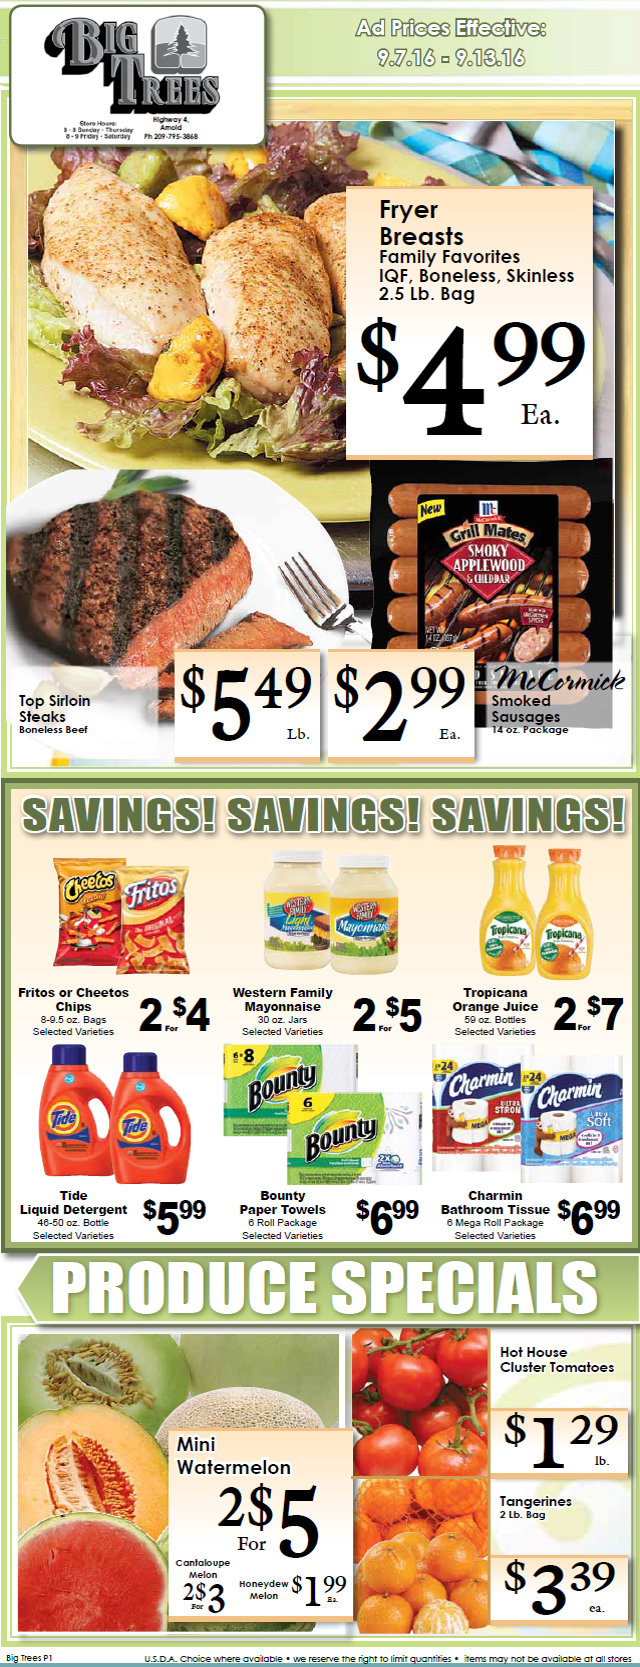 Big Trees Market Weekly Specials & Grocery Ads Through September 13th